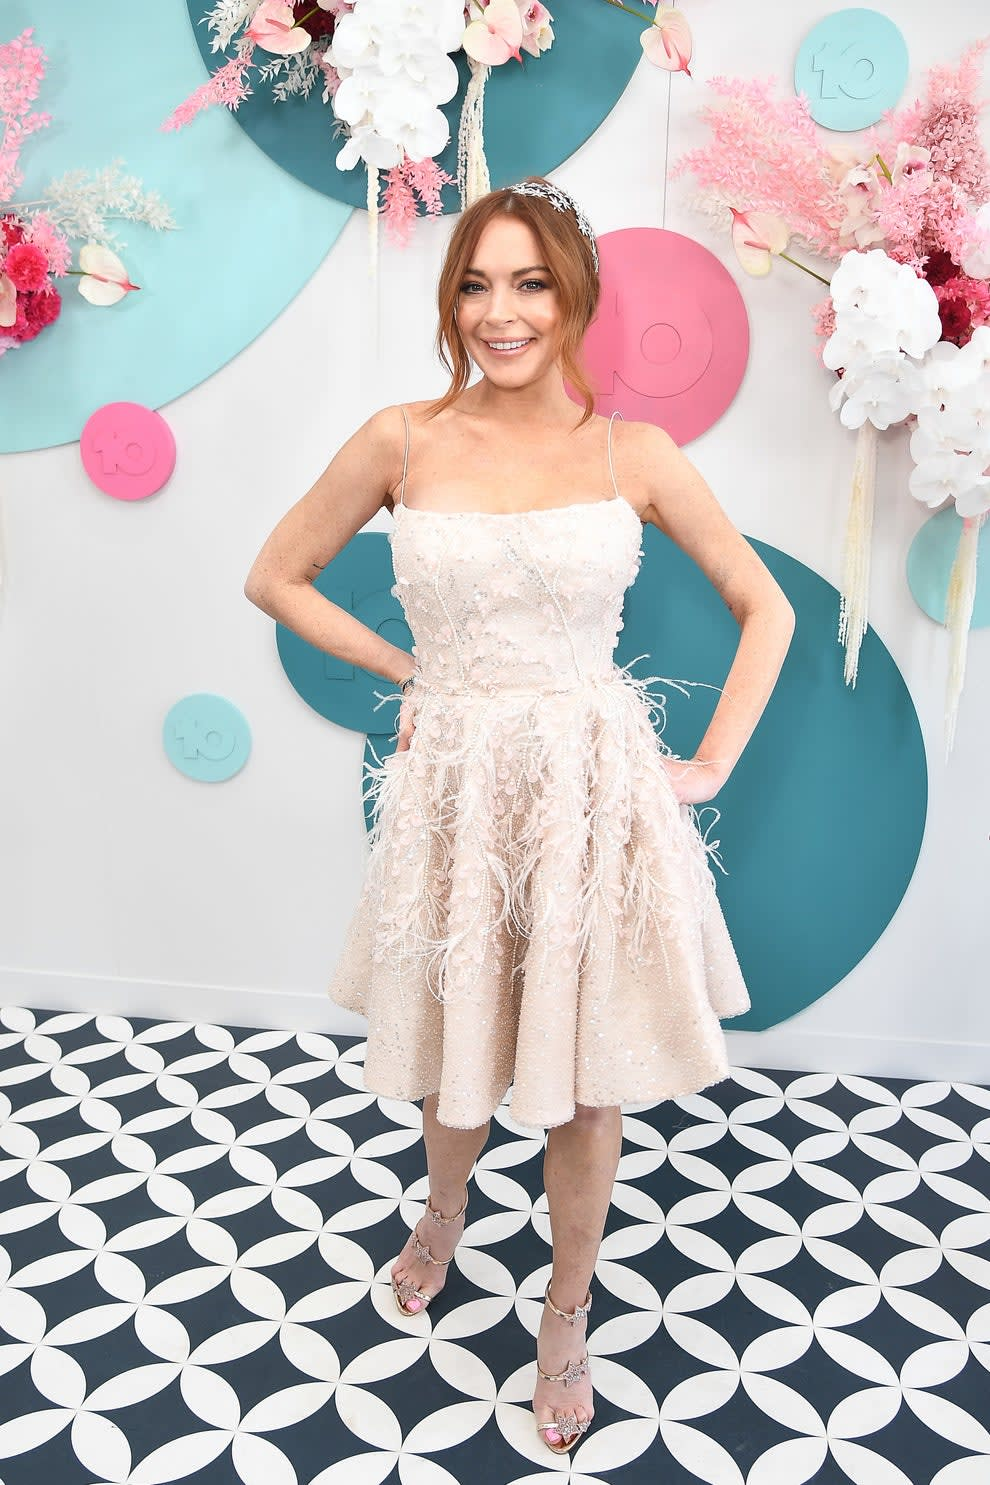 Lindsay wears a knee length dress with feathers and flowers on it. She has her hair pulled back in a headband with stars on it and she also has three stars on each of her shoes.